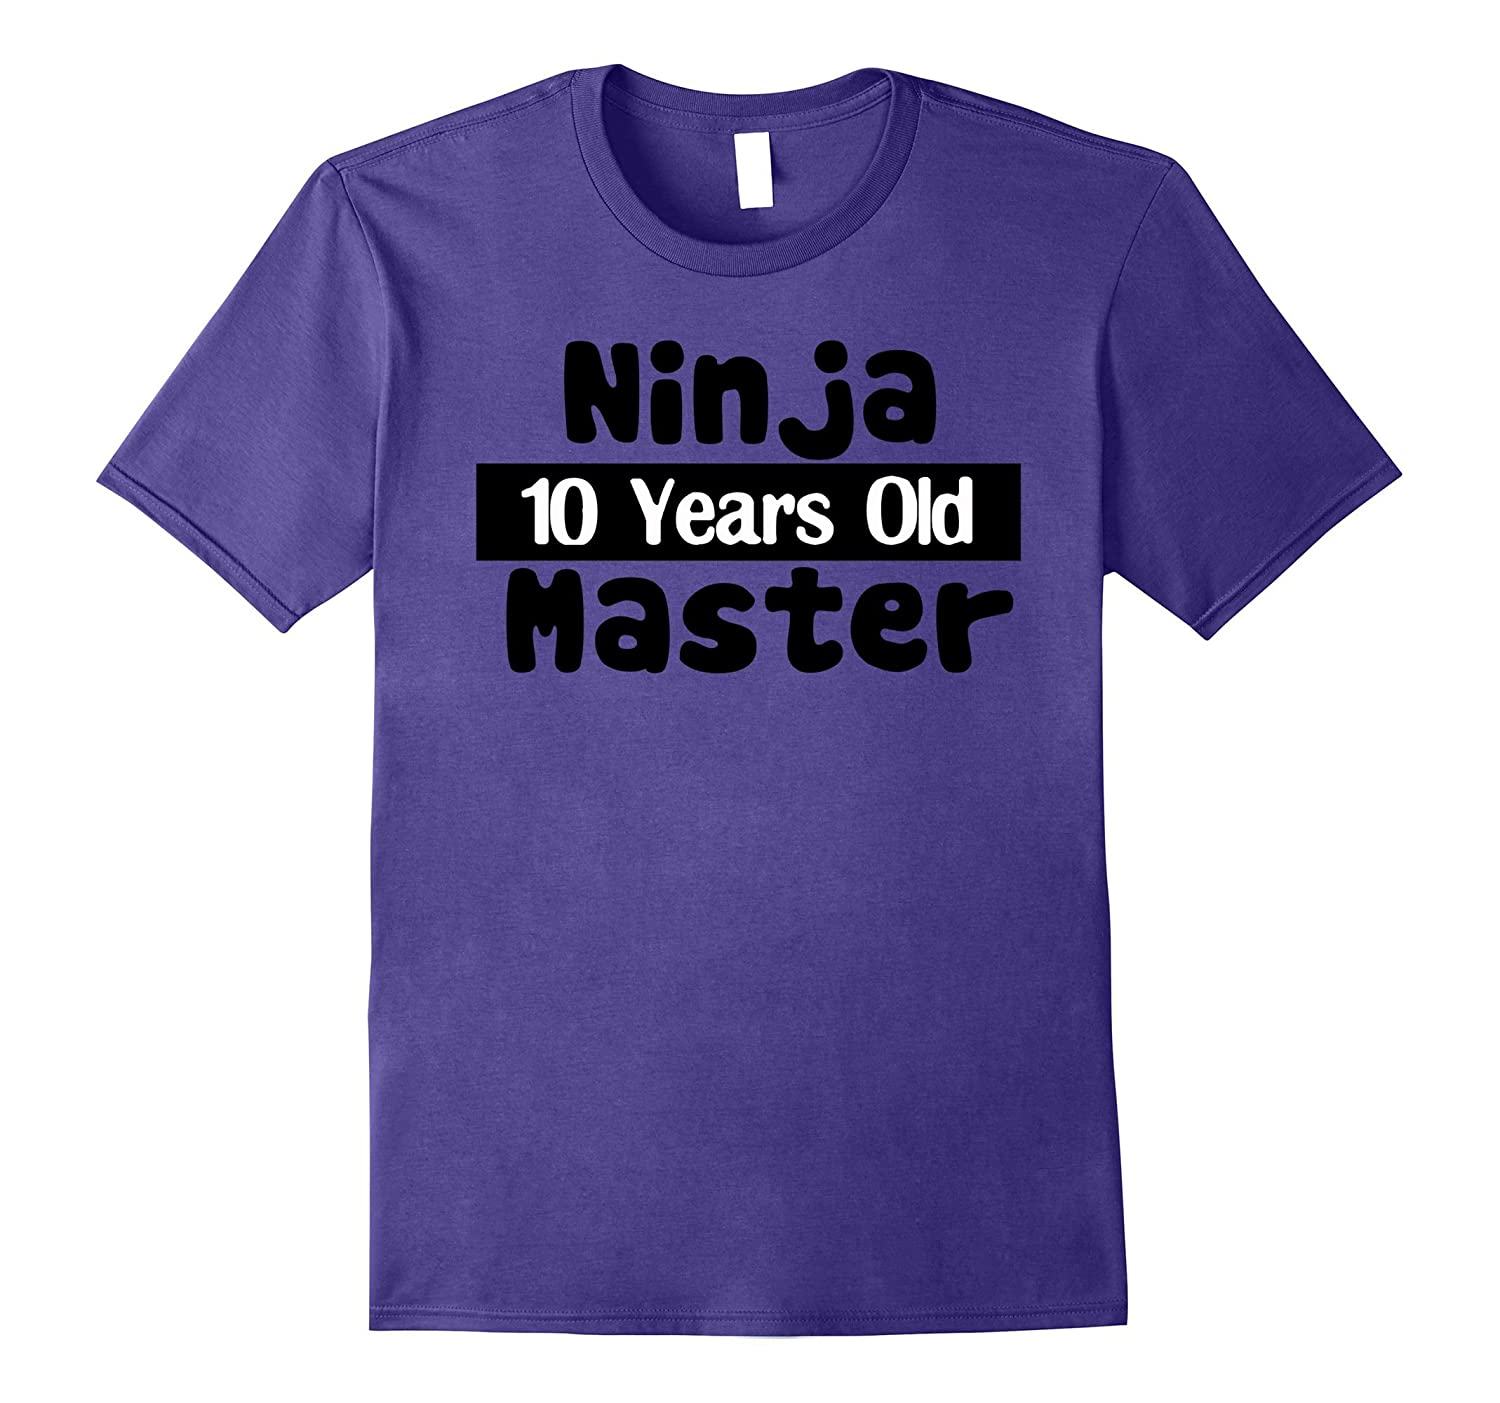 10 Year Old Ninja Master Birthday Gift Idea for kids T-shirt-Art